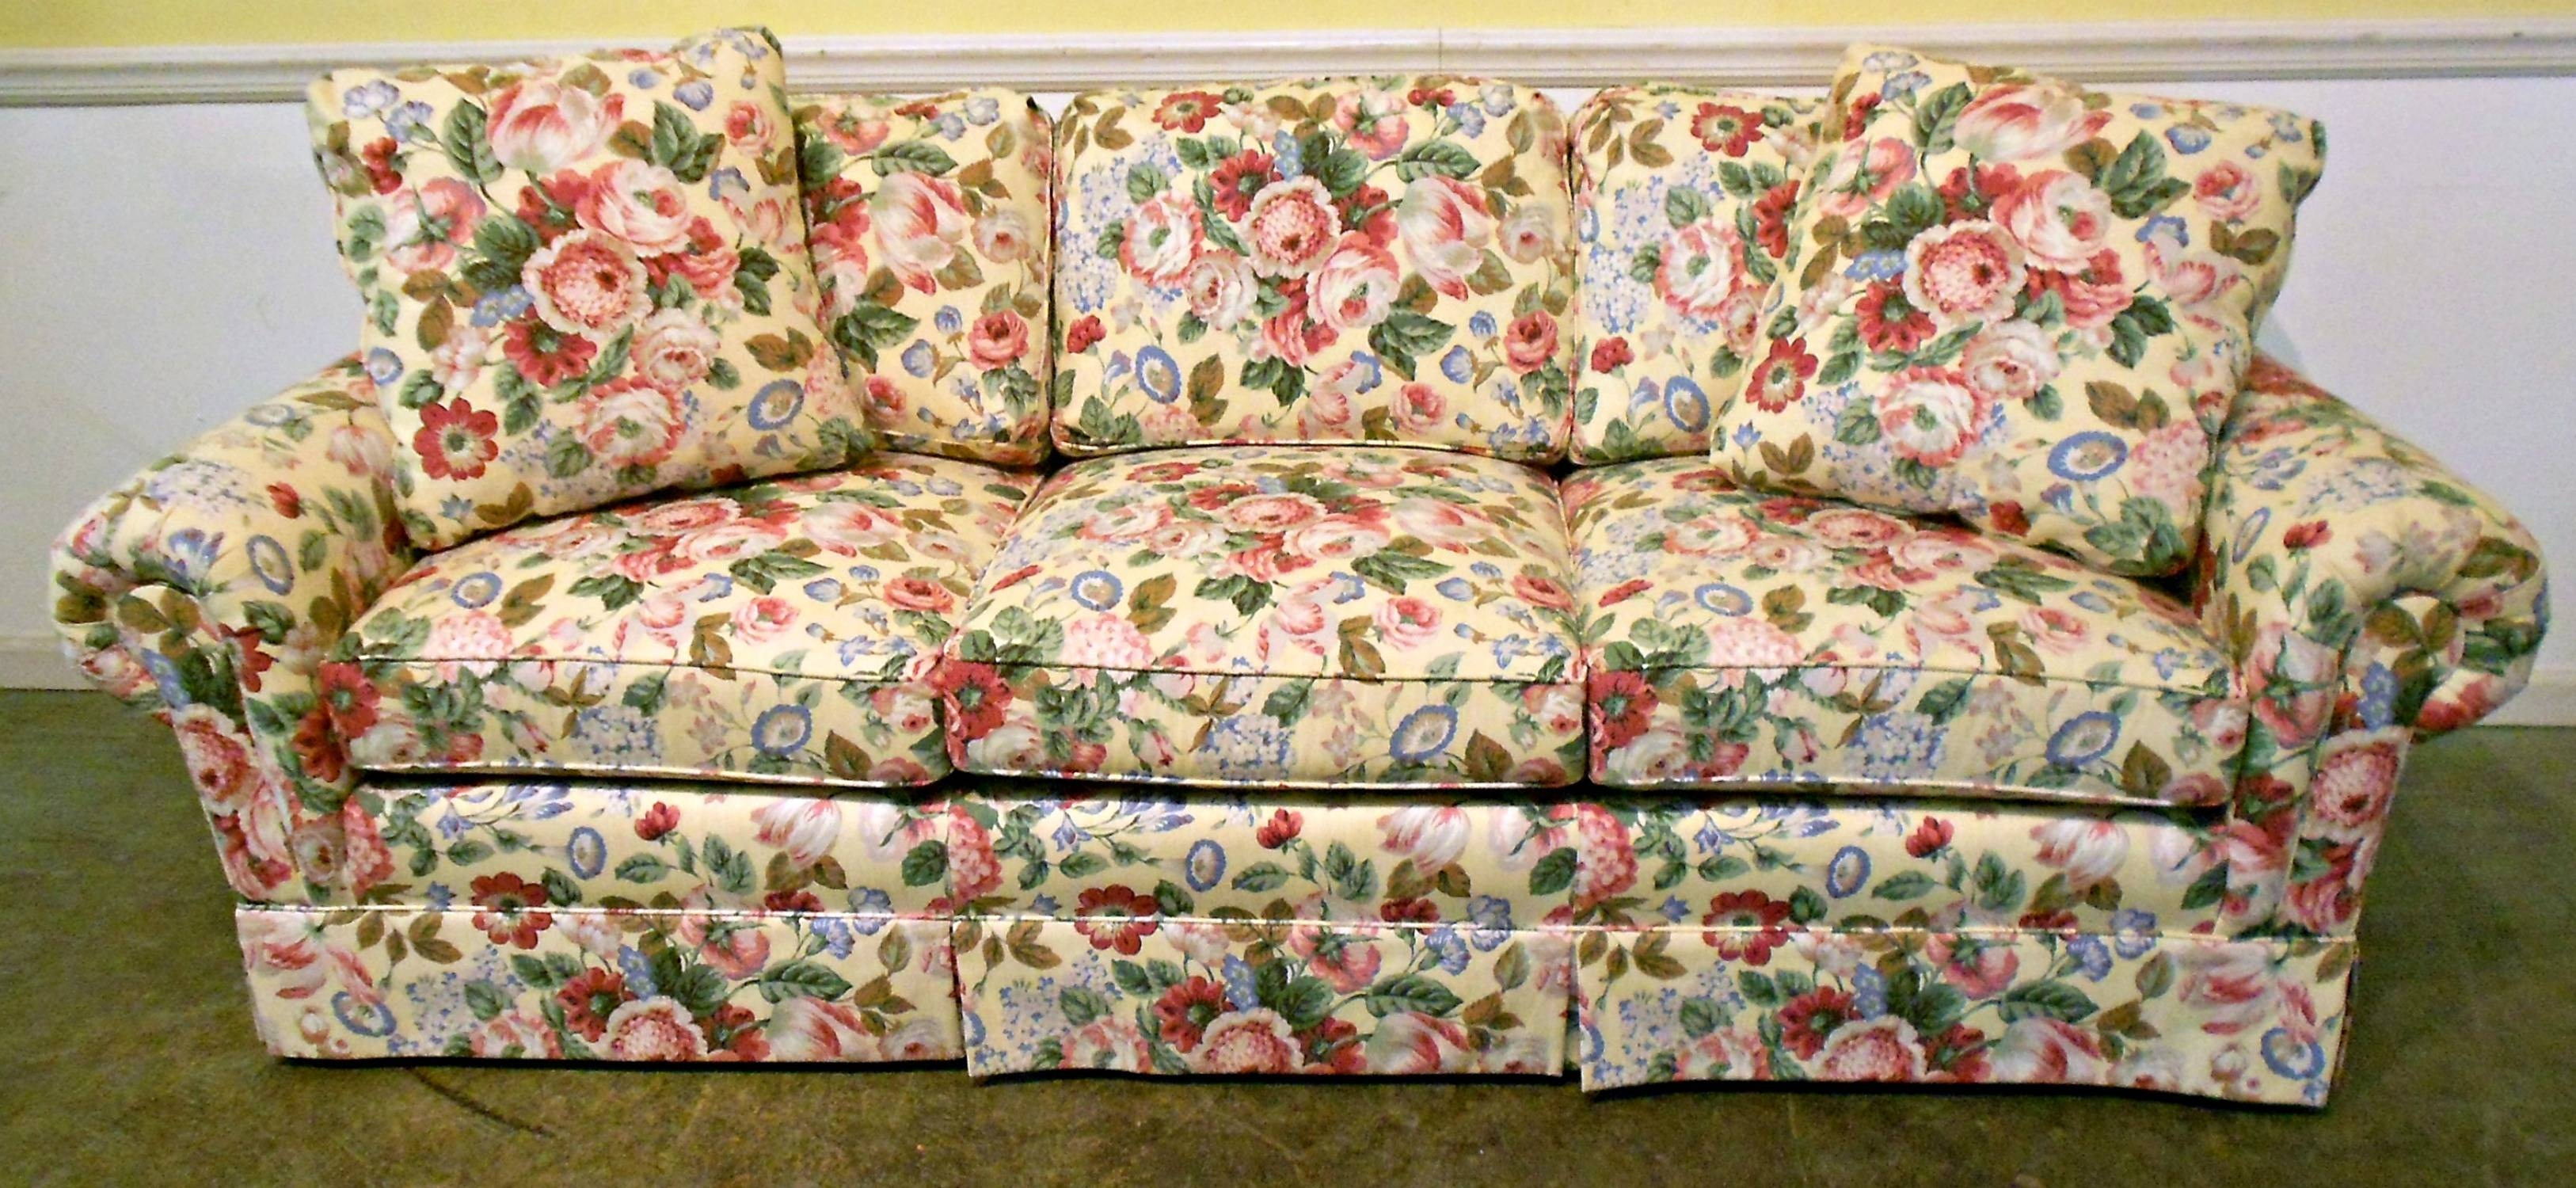 Terrific Fl Print Sofas 9 Sofa Beds Now I M Not Regarding